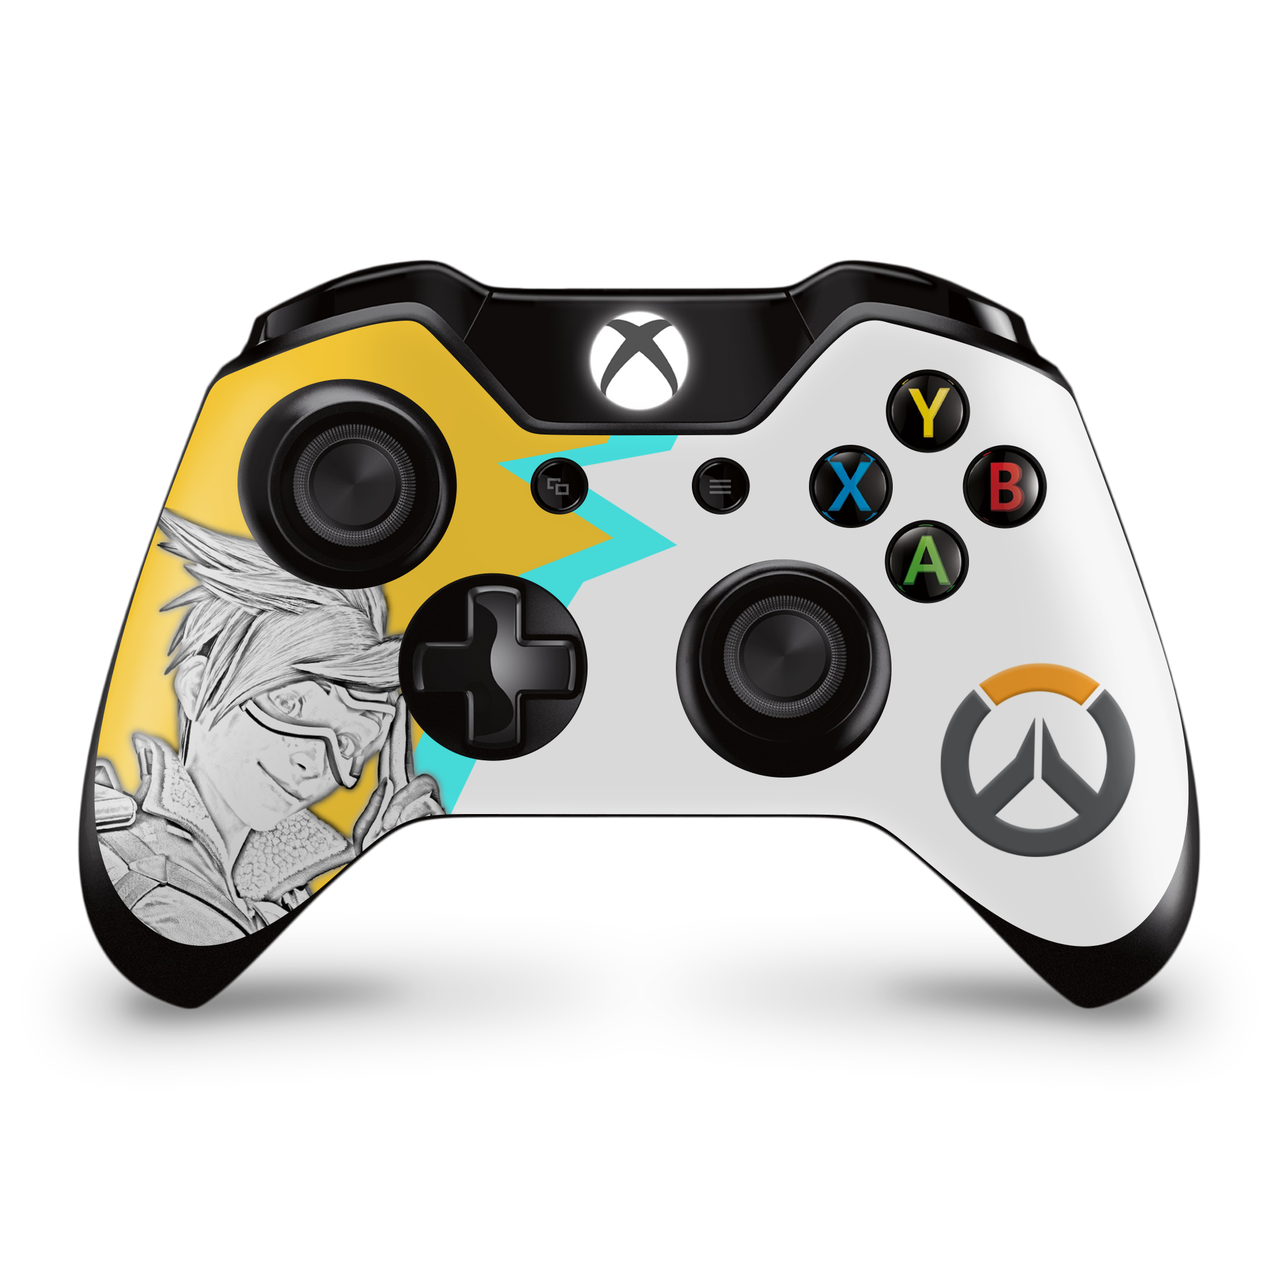 Tracer Pose Xbox One Controller Skin Xbox One Controller Custom Xbox One Controller Xbox One